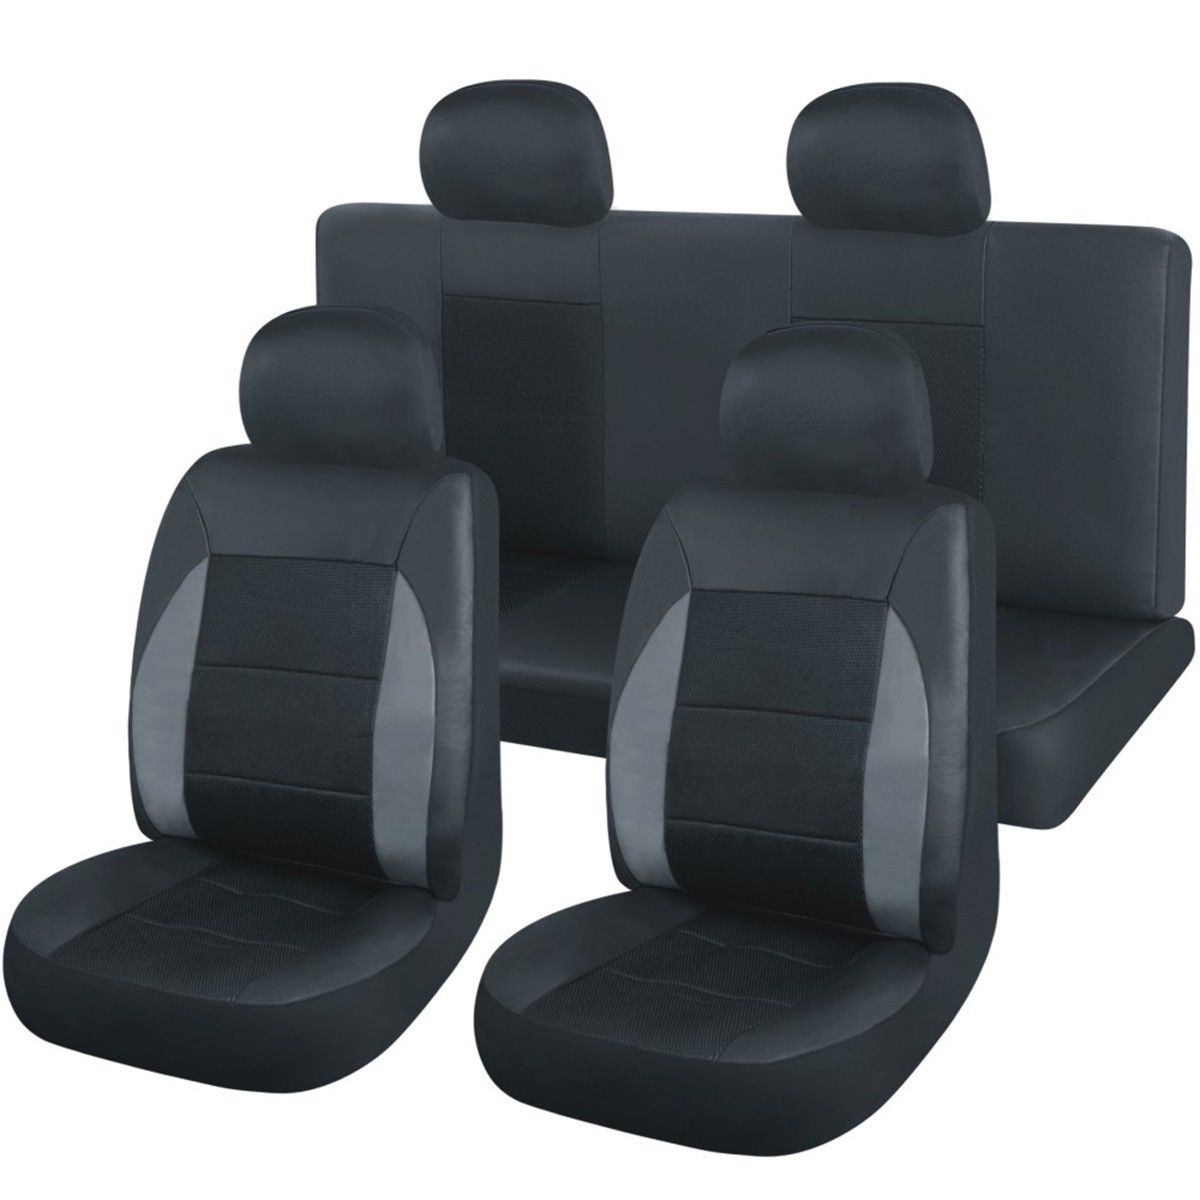 5bffec1c9bac Car Seat Covers